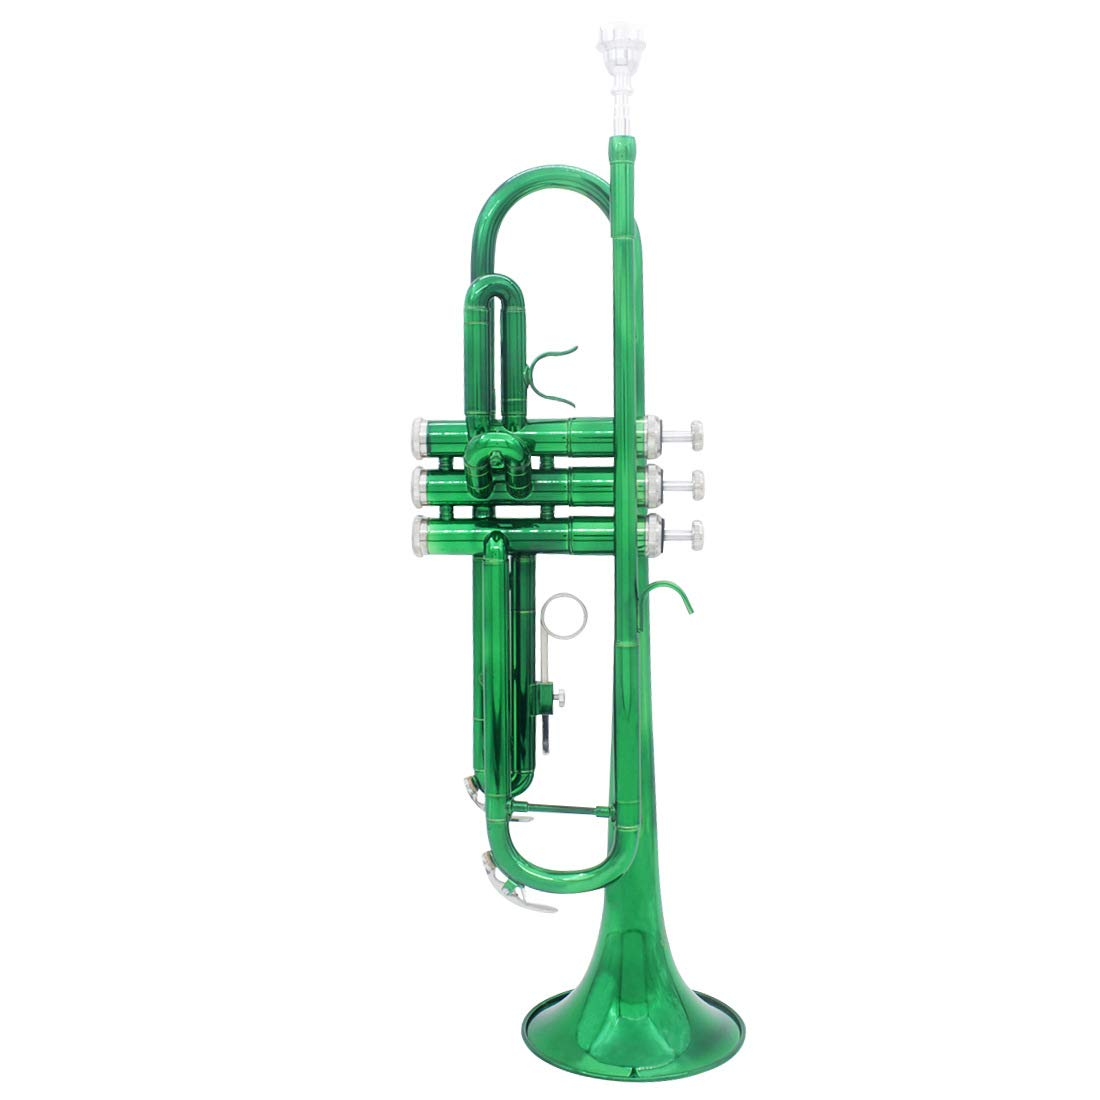 SHMYQQ Bb Trumpet Pro Case Care Kit,Nickel Plated Intermediate Double-Braced Bb Trumpet Standard B Flat Bb Student Trumpet Green